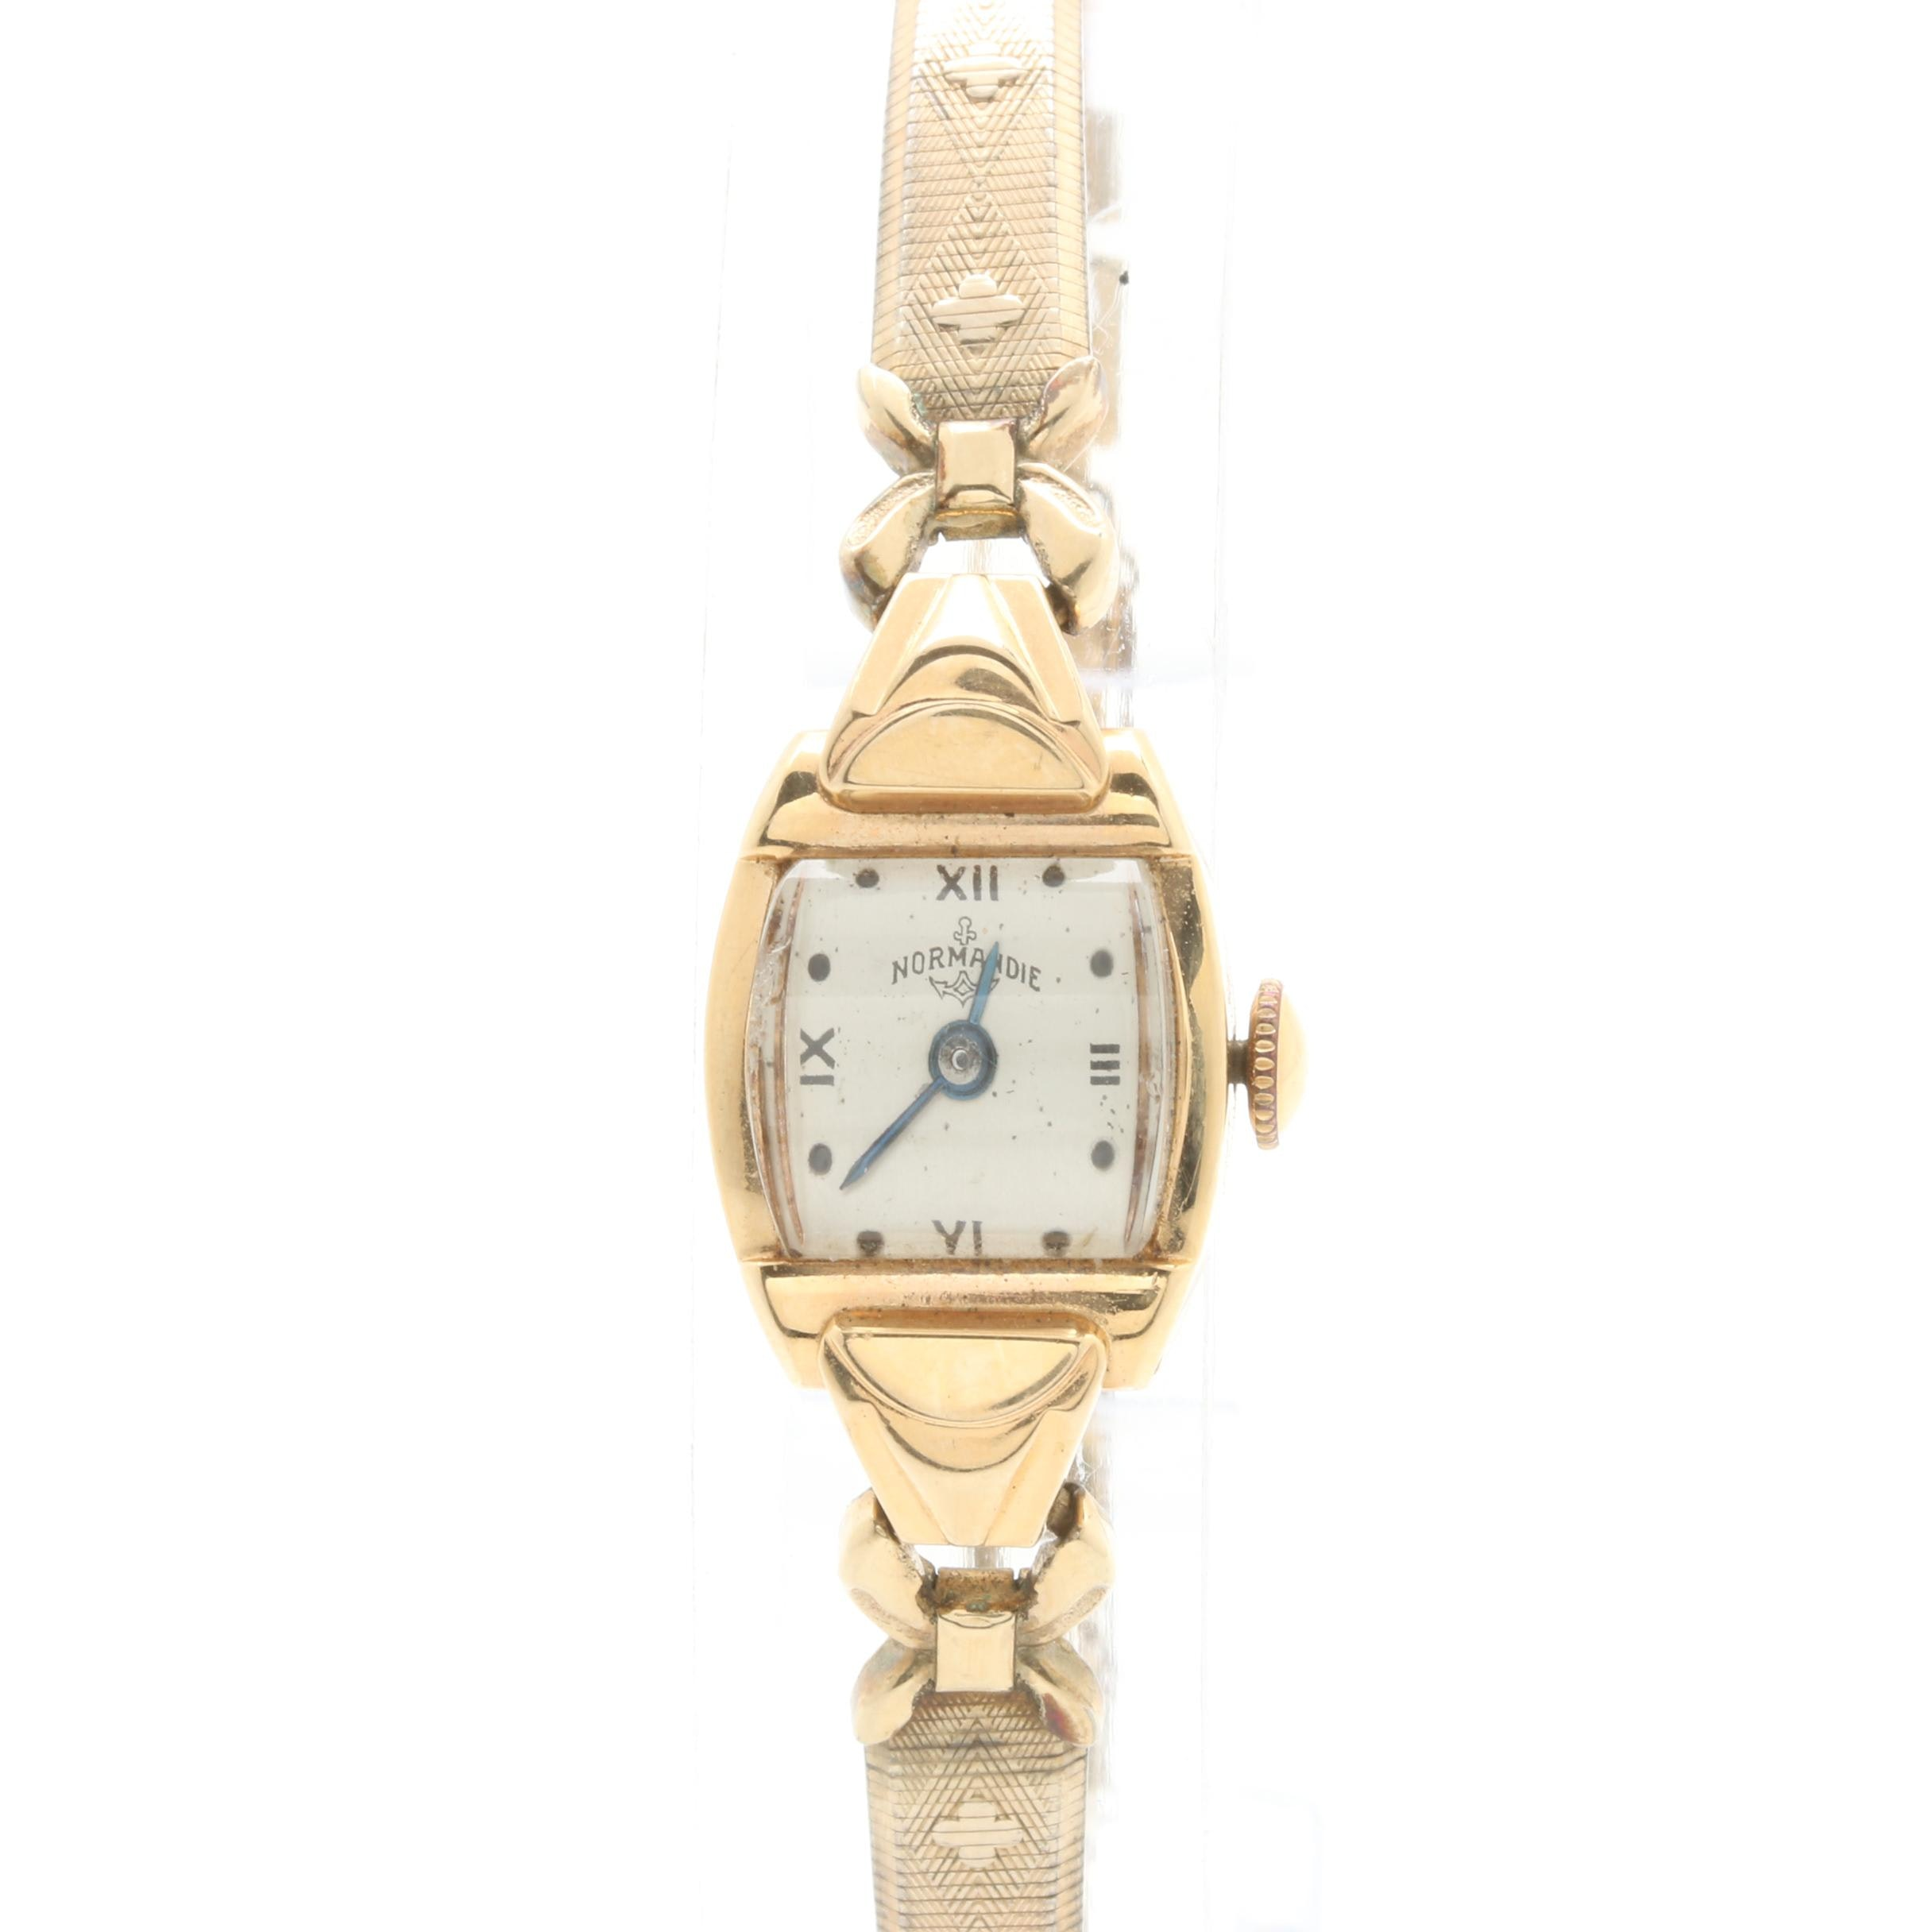 Normandie 14K Yellow Gold Wristwatch